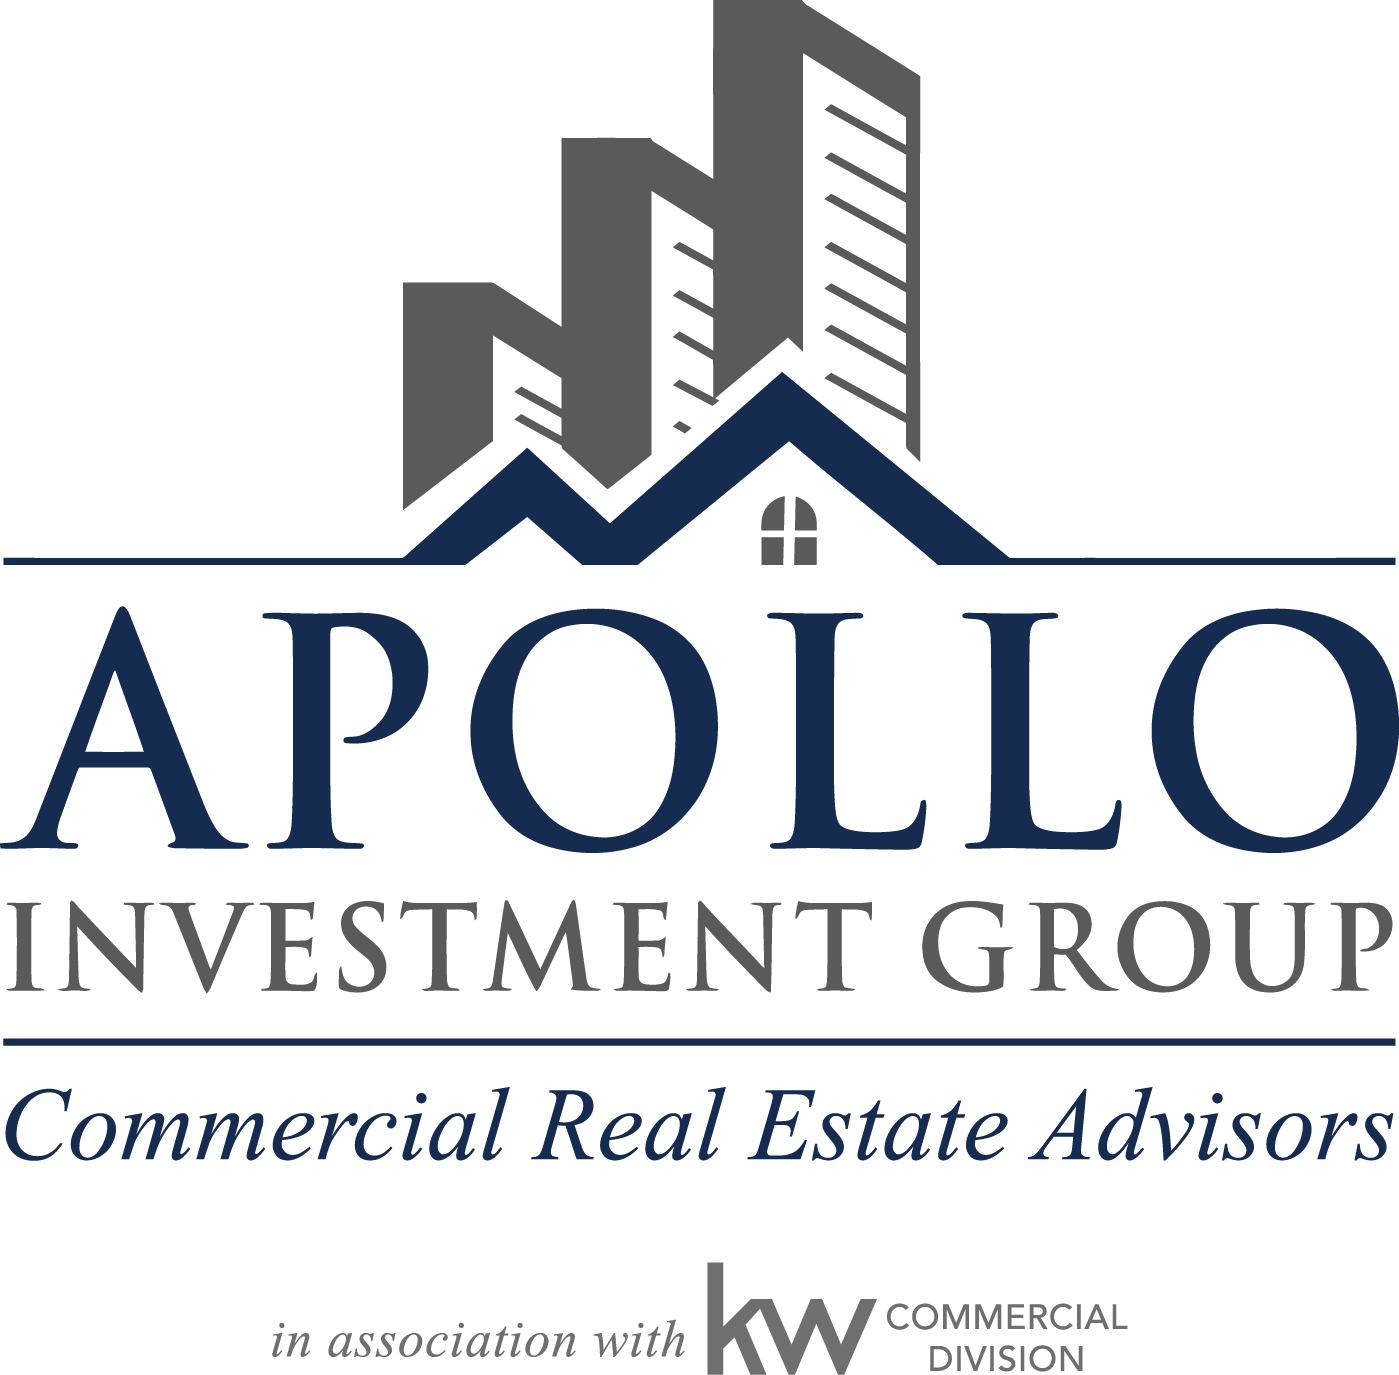 Apollo Investment Group | Commercial Real Estate Advisors